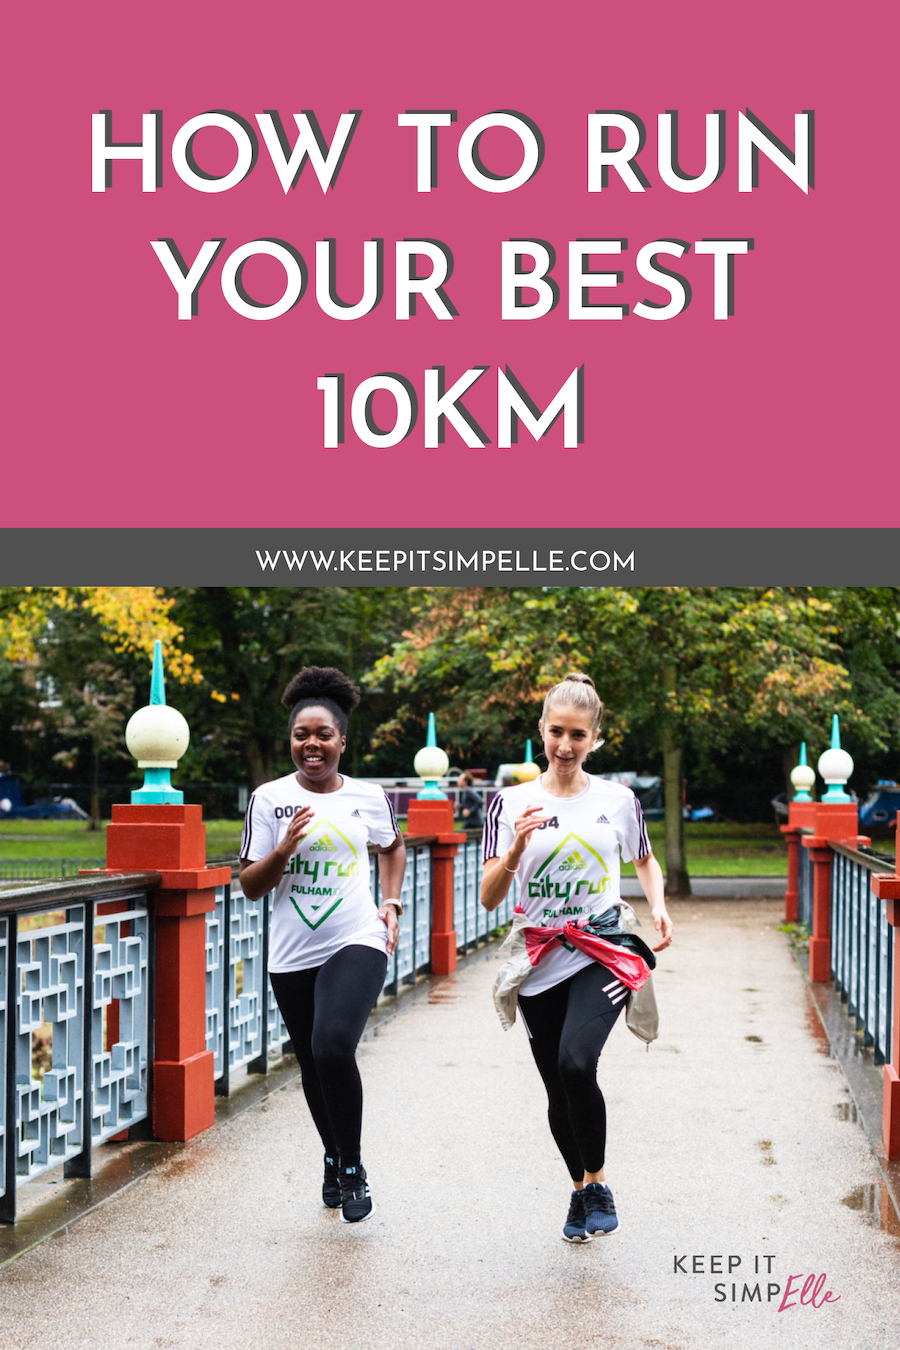 How To Run Your Best 10km